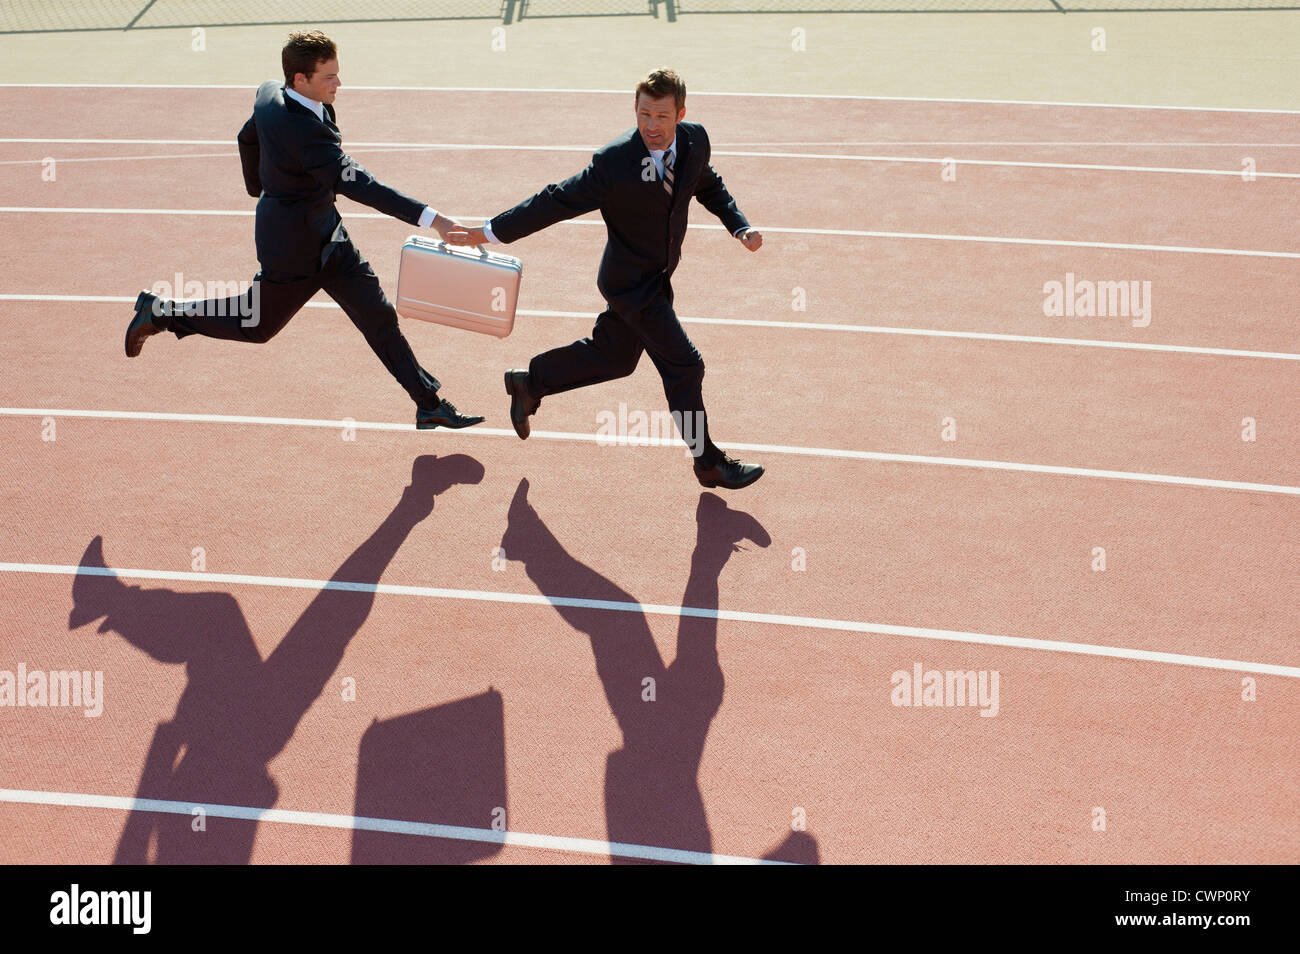 Businessmen passing briefcase while running on running track - Stock Image